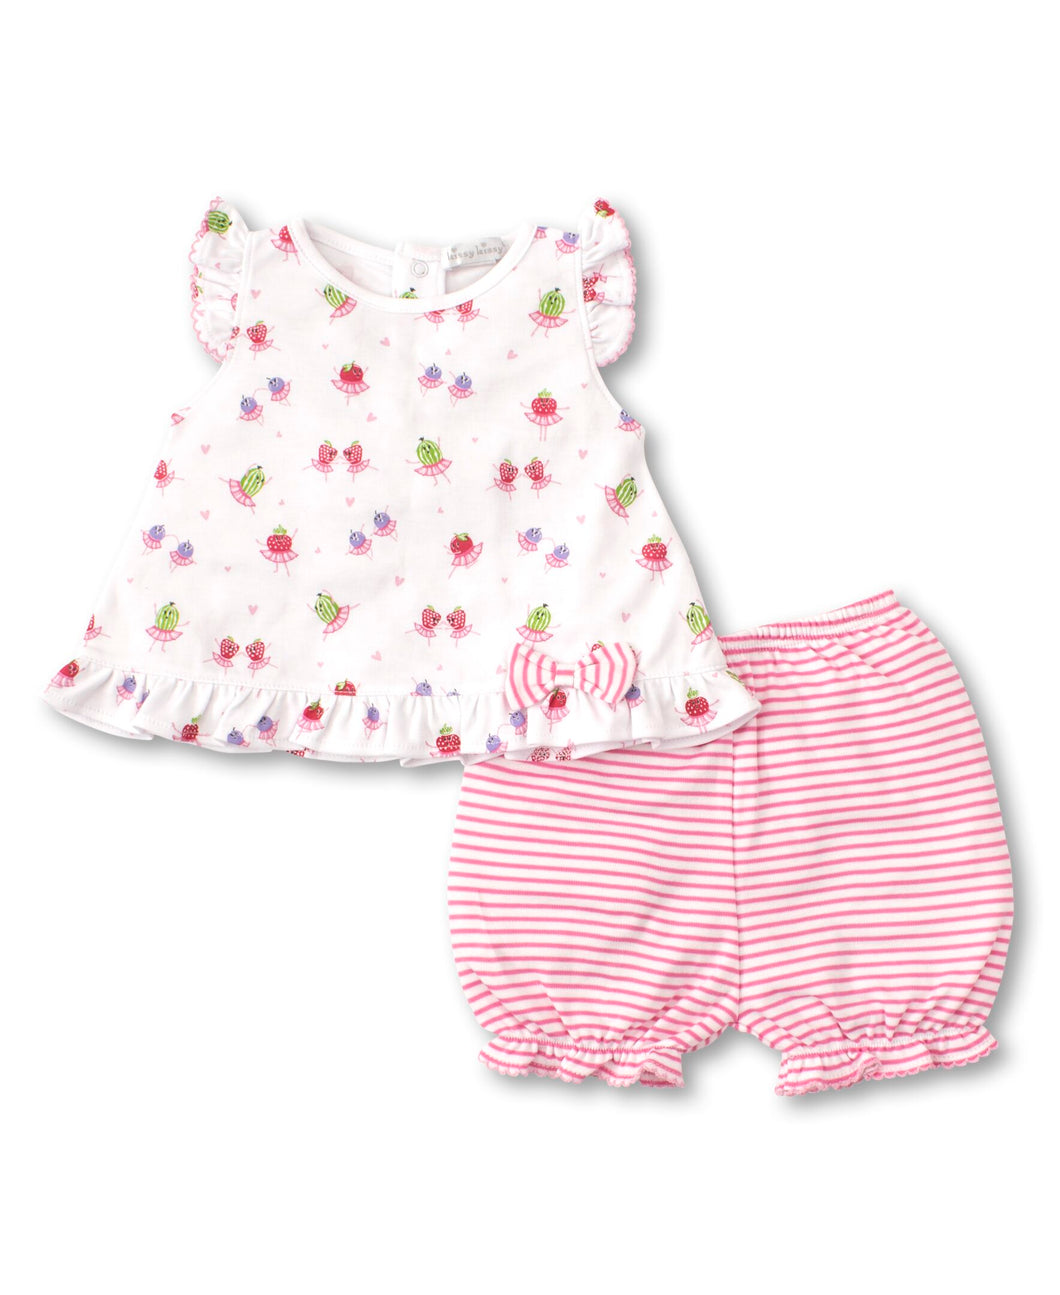 Berry Ballet Sunsuit Set Mix - Fuchsia Print